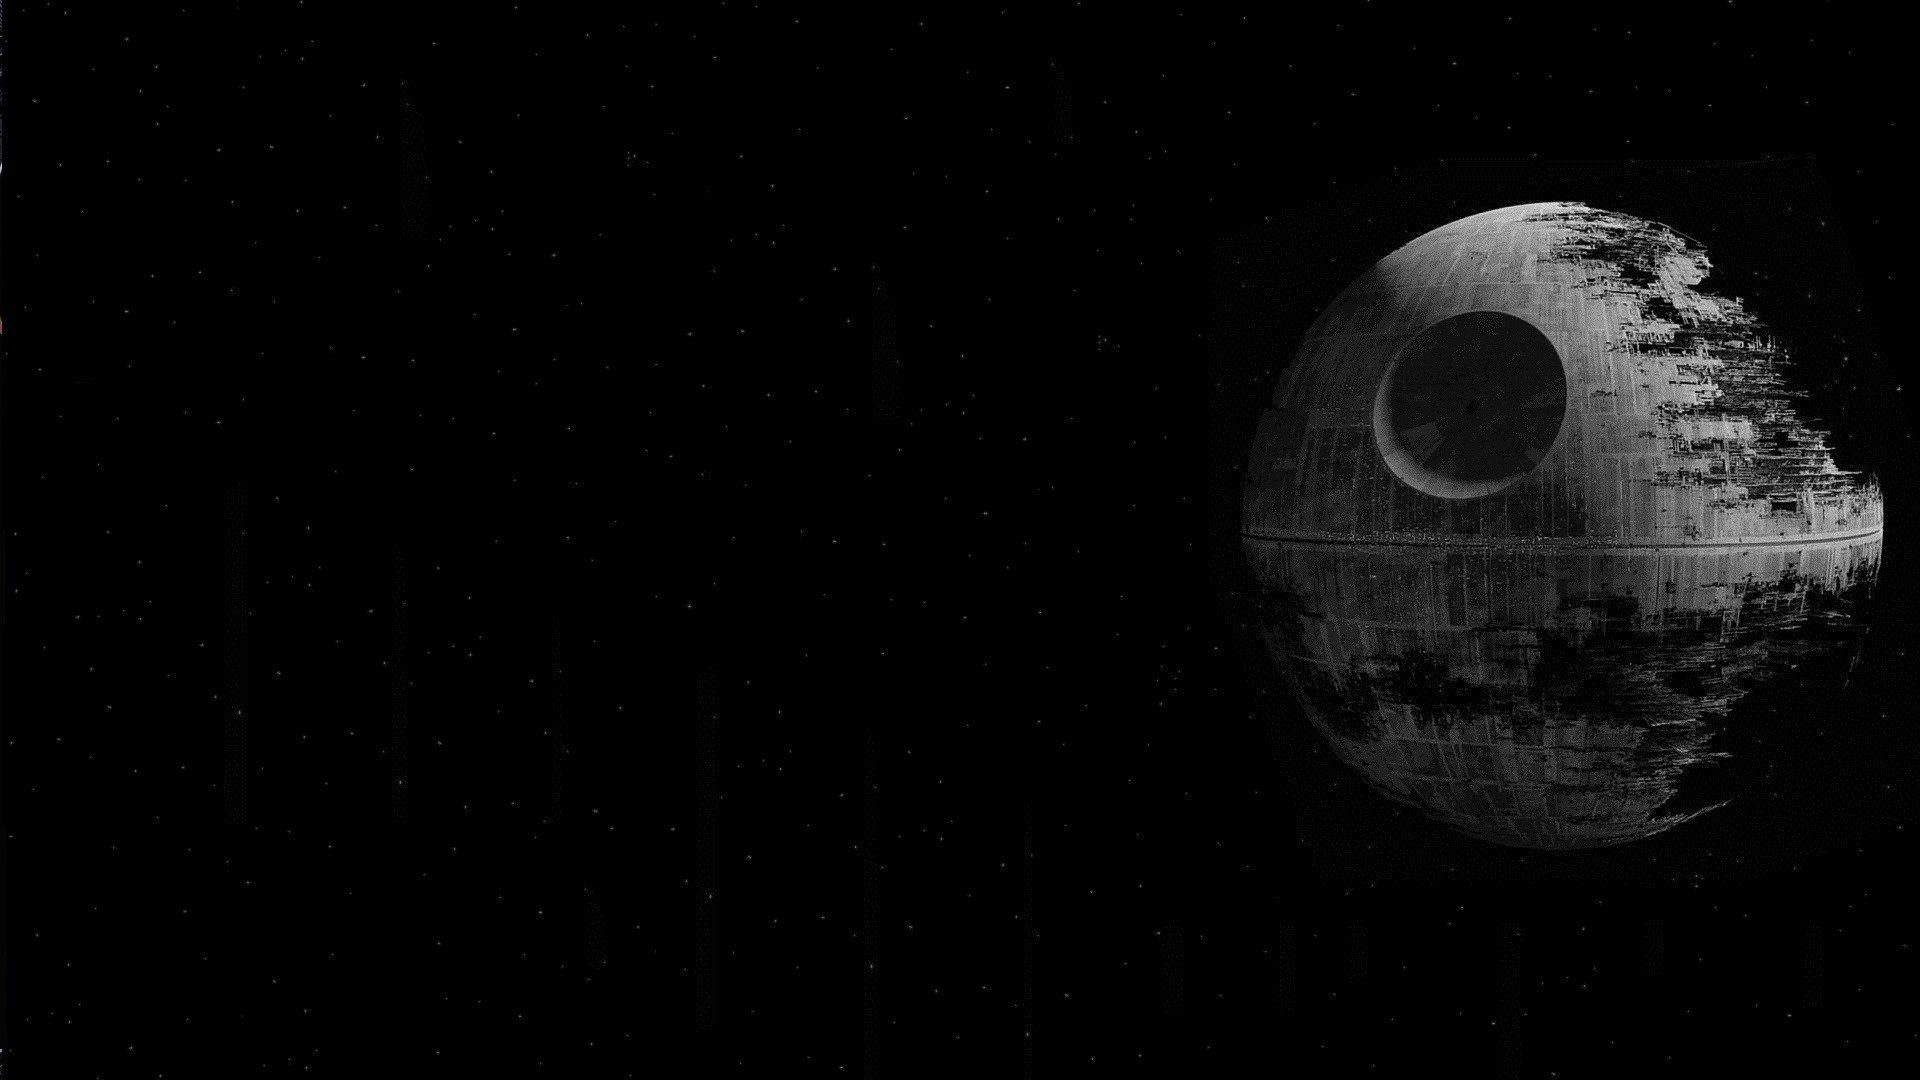 3840x1080 Wallpaper Star Wars (56+ Images